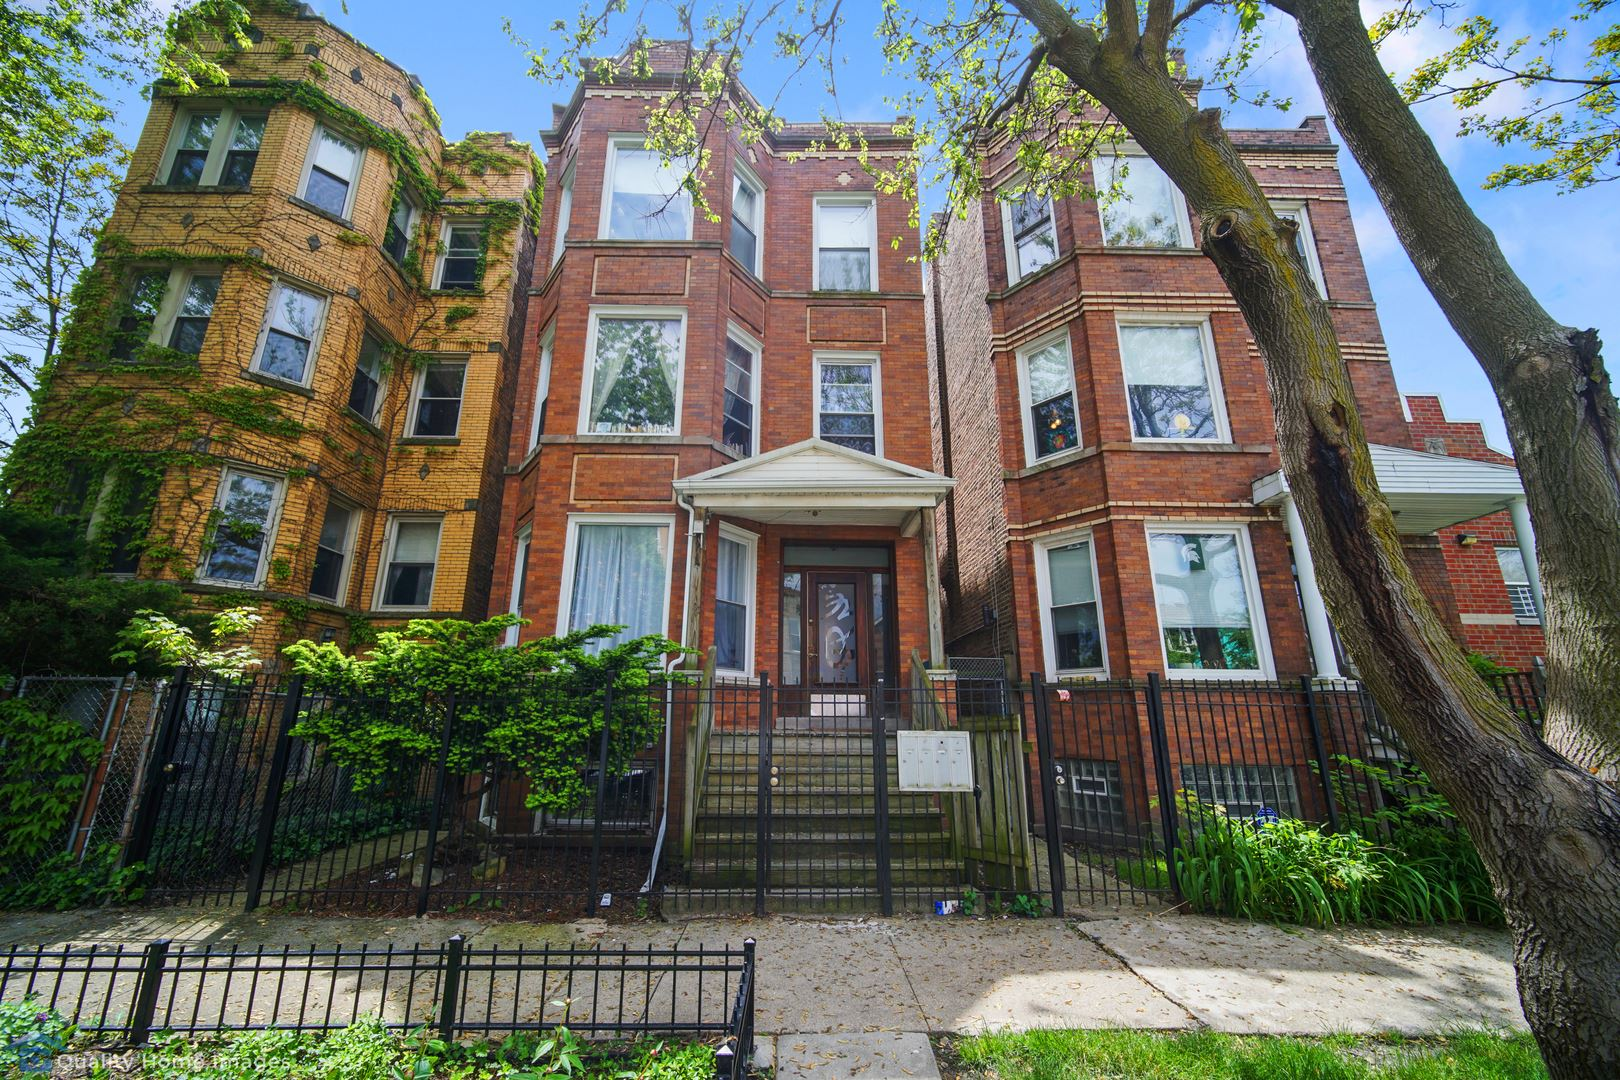 3307 W Crystal Street, Chicago, IL 60651 - #: 10727615